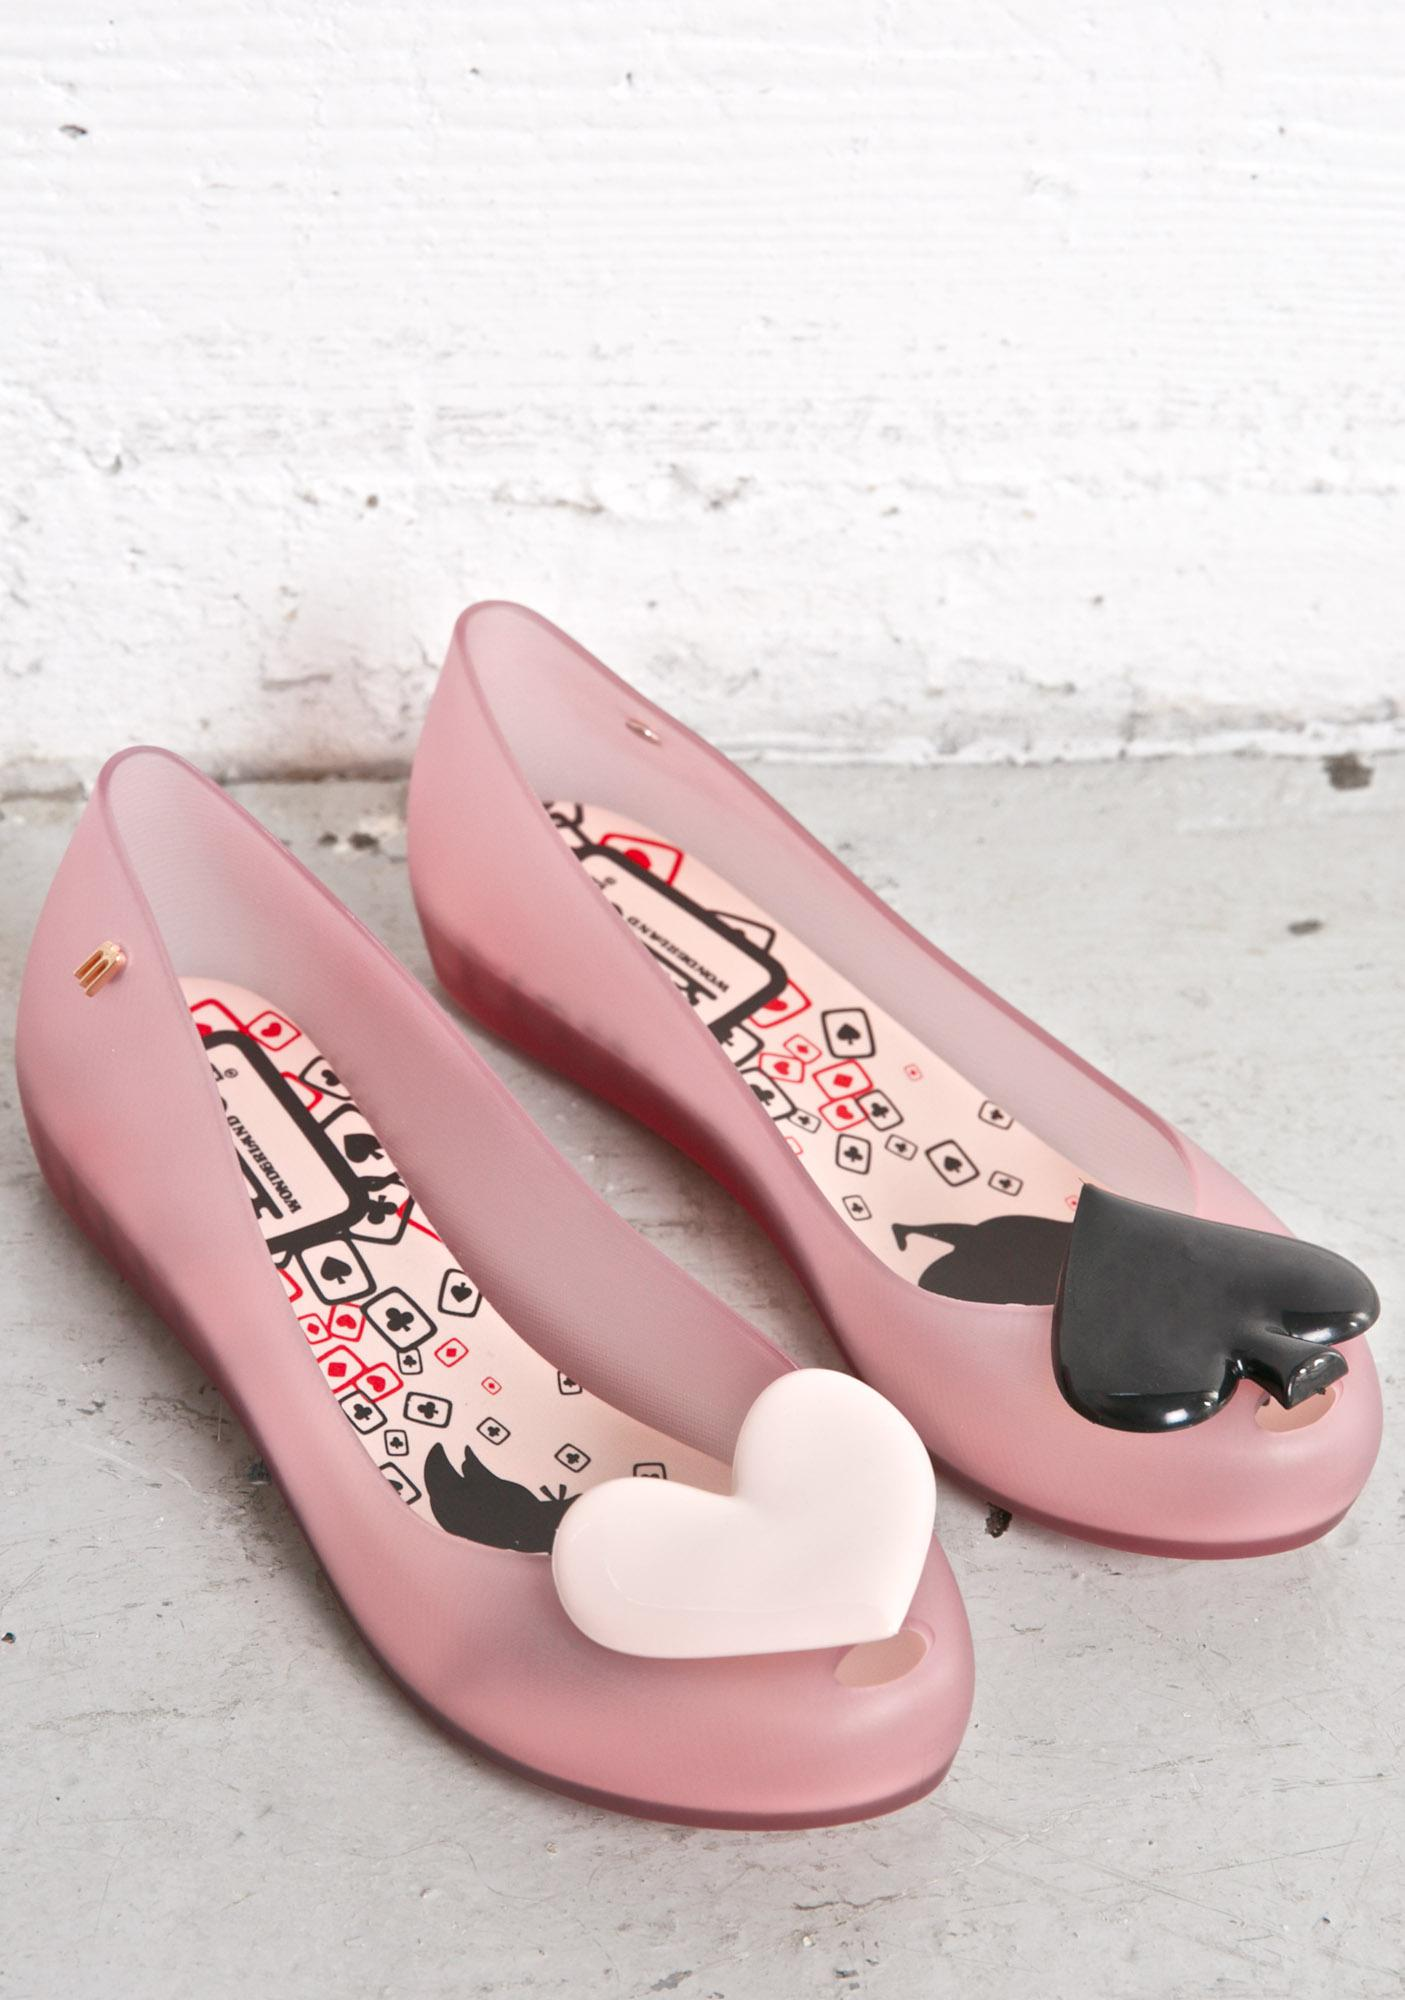 Melissa Queen Ultragirl Alice In Wonderland Flats